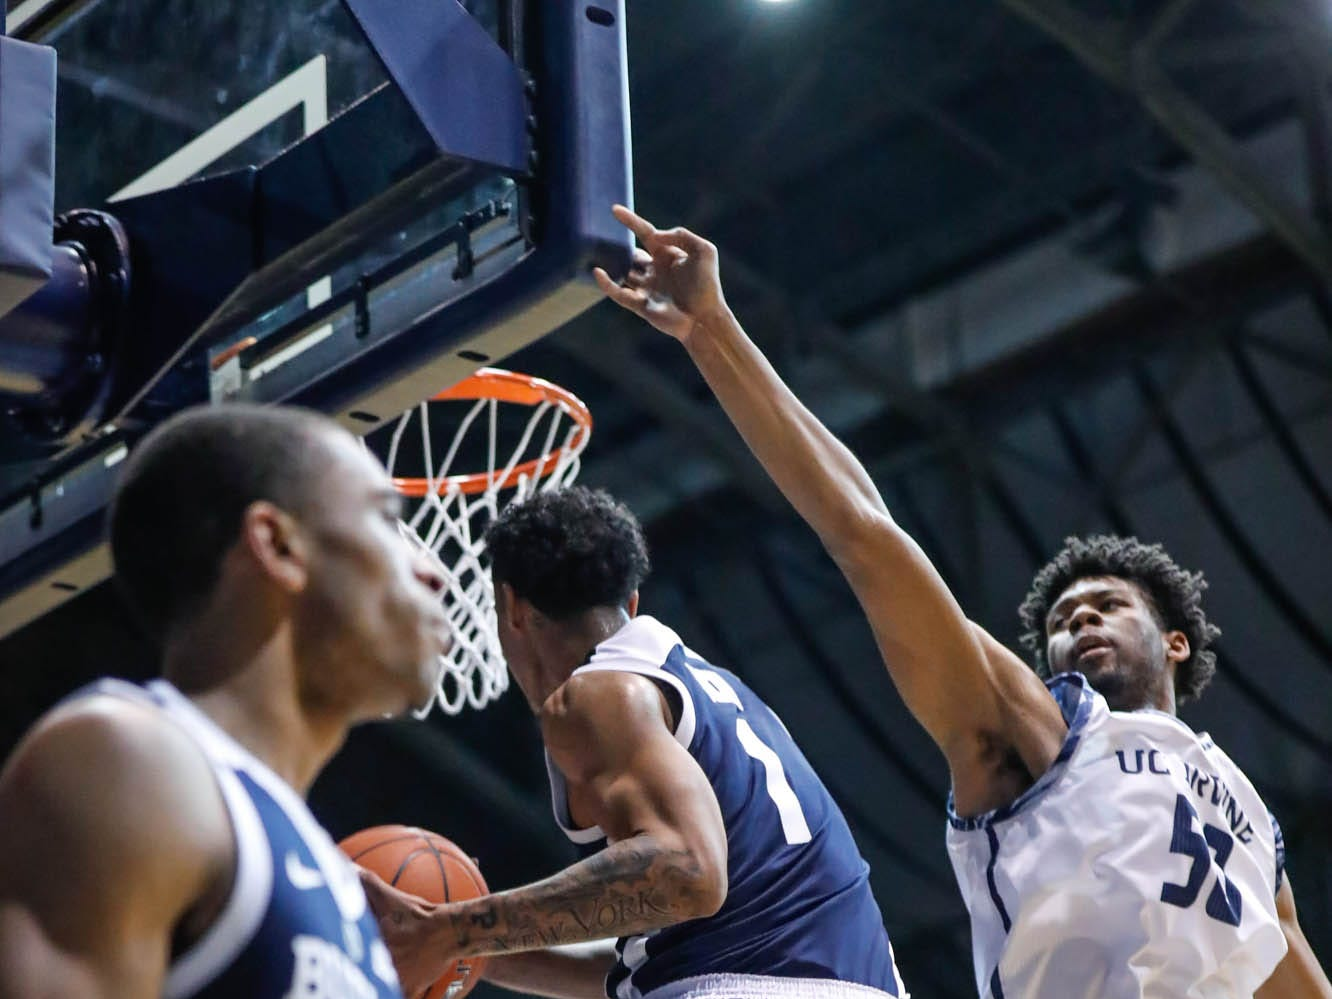 Butler University's forward Jordan Tucker (1) shoots a layup, but a foul is called, during a game between Butler University and UC Irvine, at Hinkle Fieldhouse on Friday, Dec. 21, 2018. Butler University's guard Aaron Thompson (2), UC Irvine's forward Elston Jones (50).